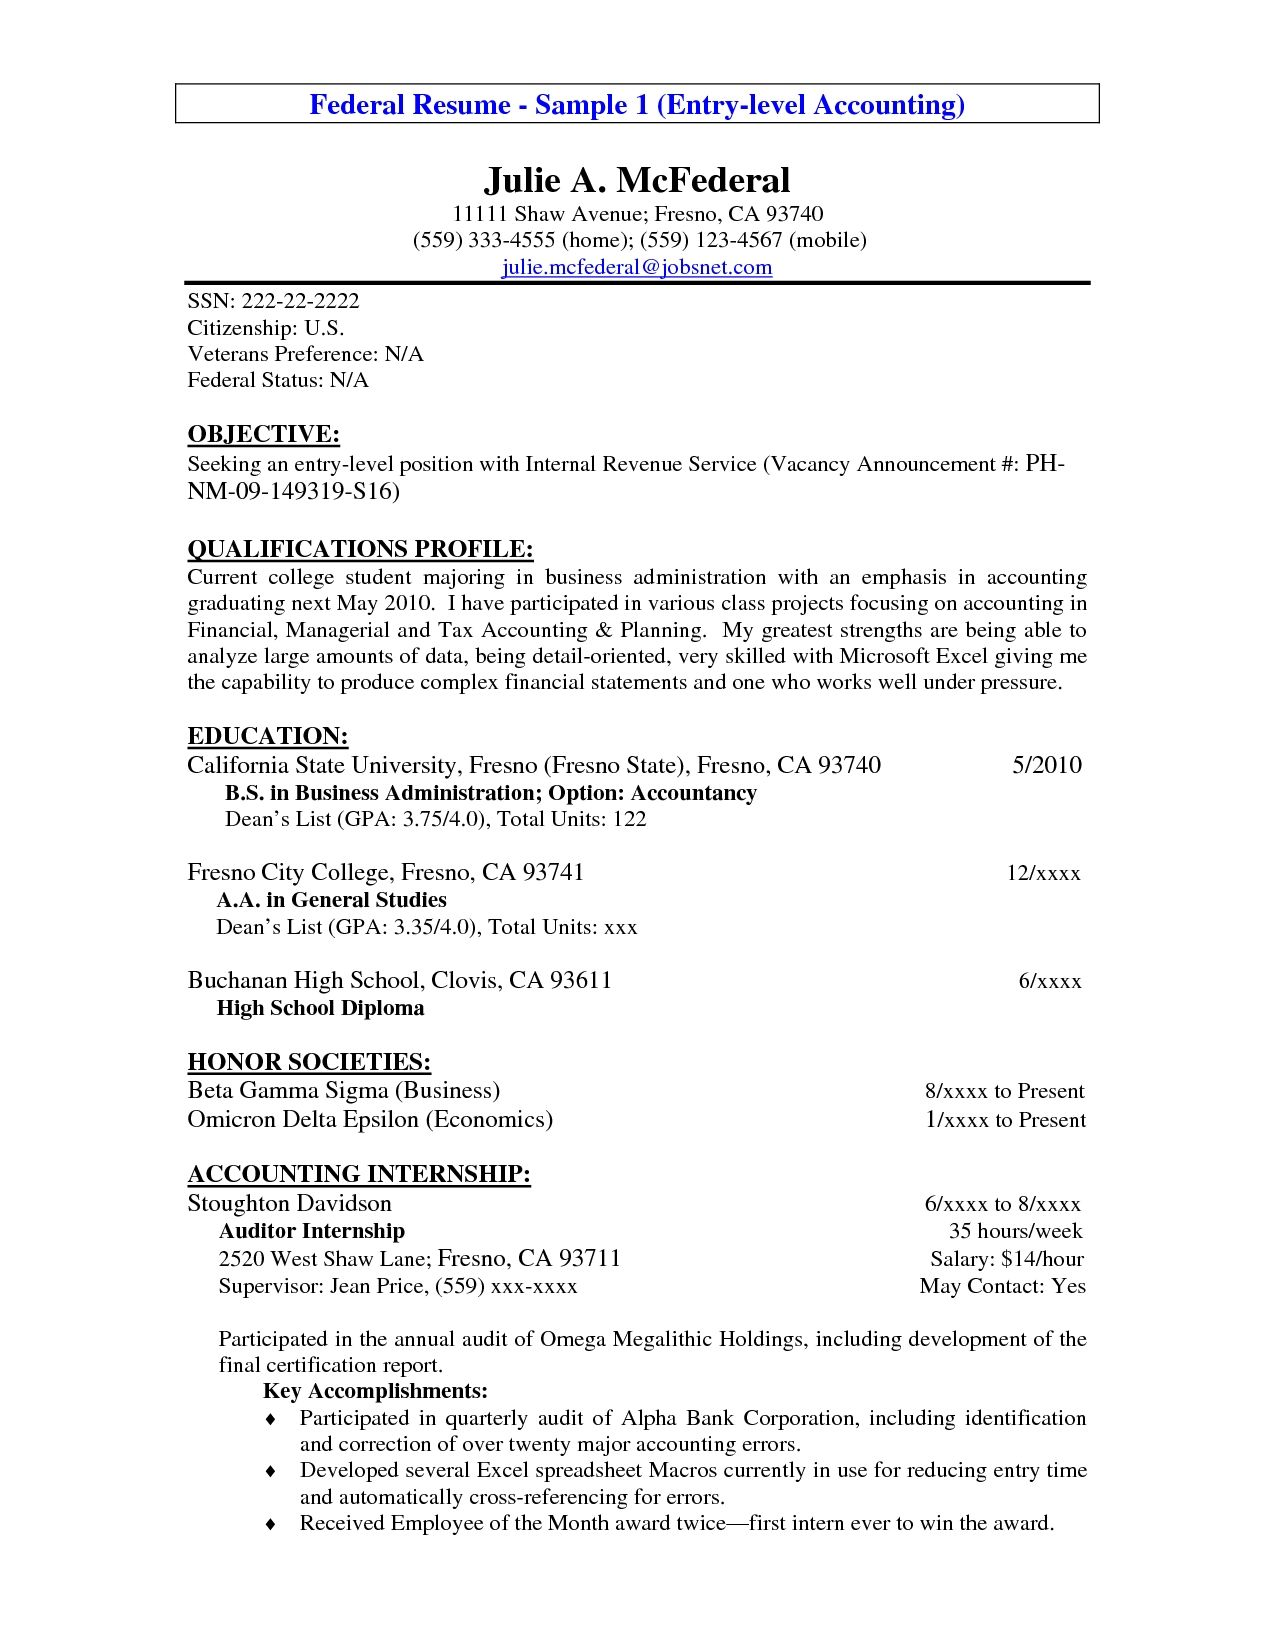 Amazing Entry Level Resume Example Entry Level Accounting Resume Sample Gallery  Photos